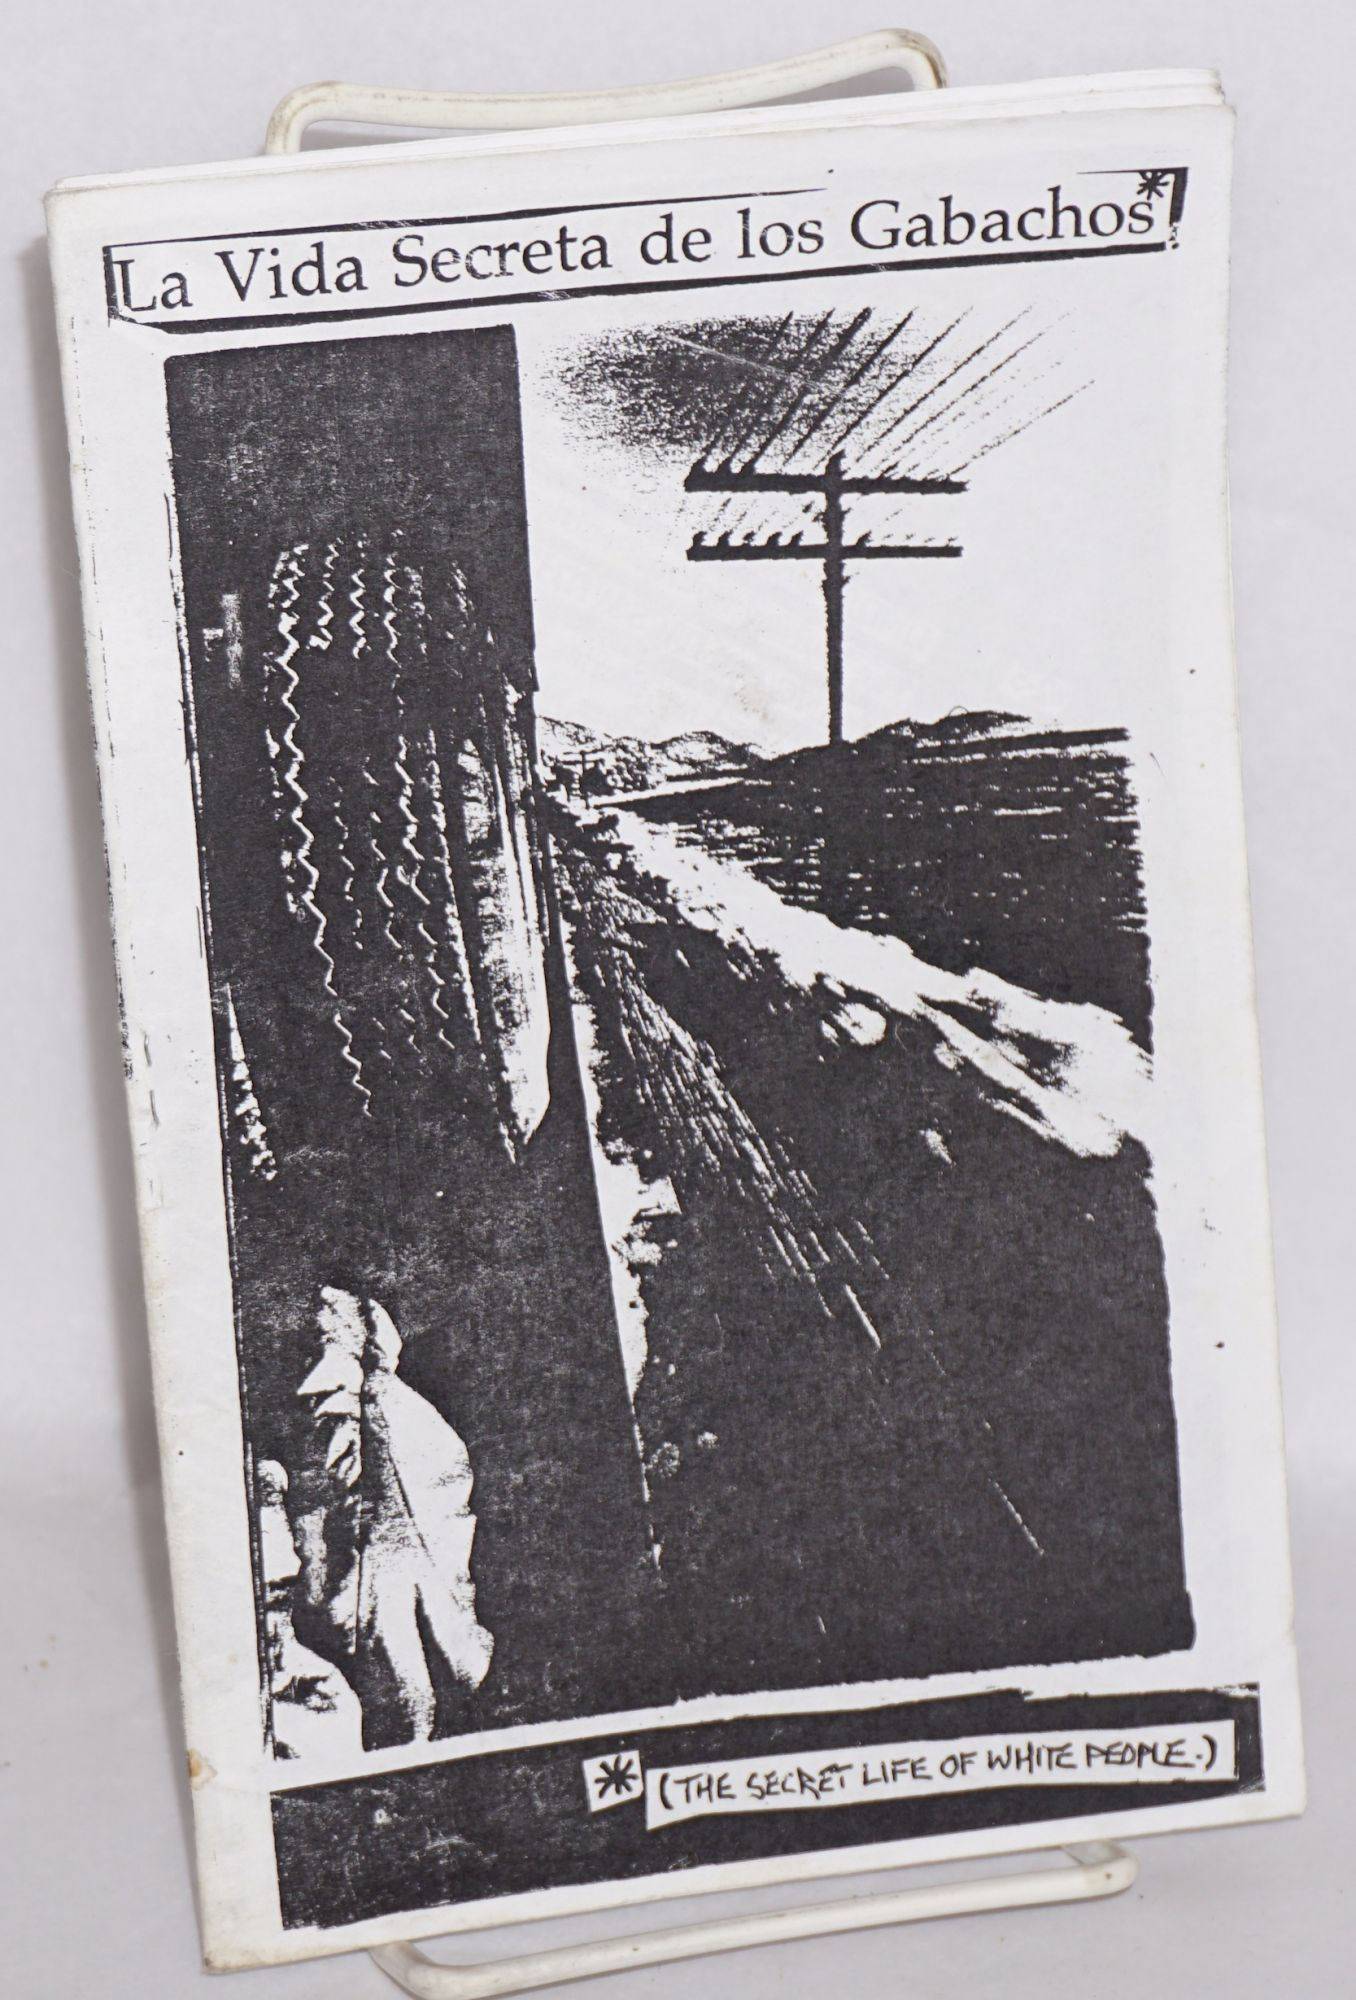 The title in Spanish is across the top, and in English along the bottom.  Black and white collage of a tire on the left and telephone pole and wires on the right.